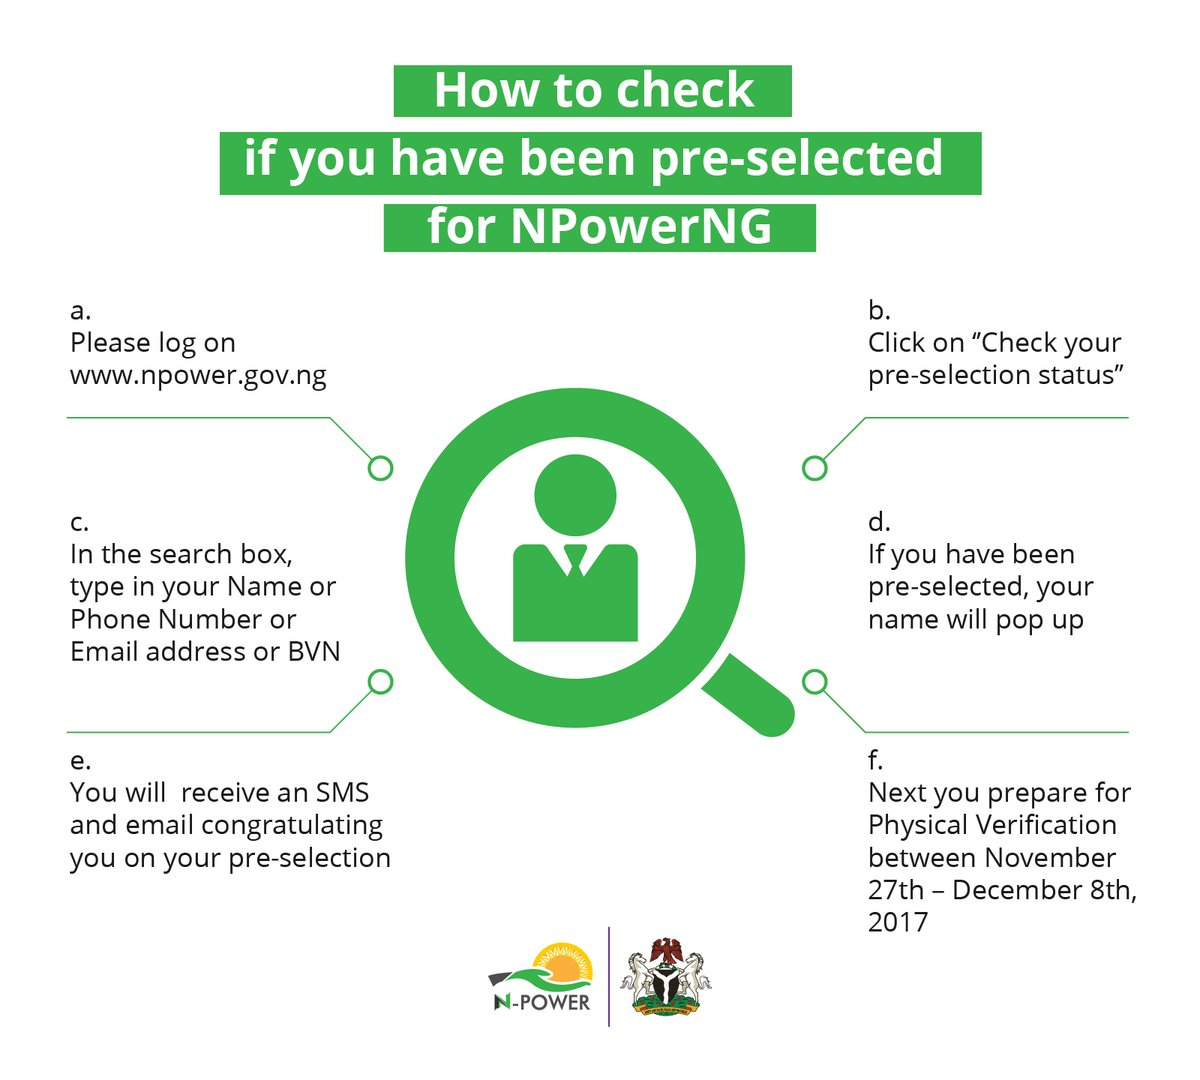 N-Power explains how to check pre-selection status